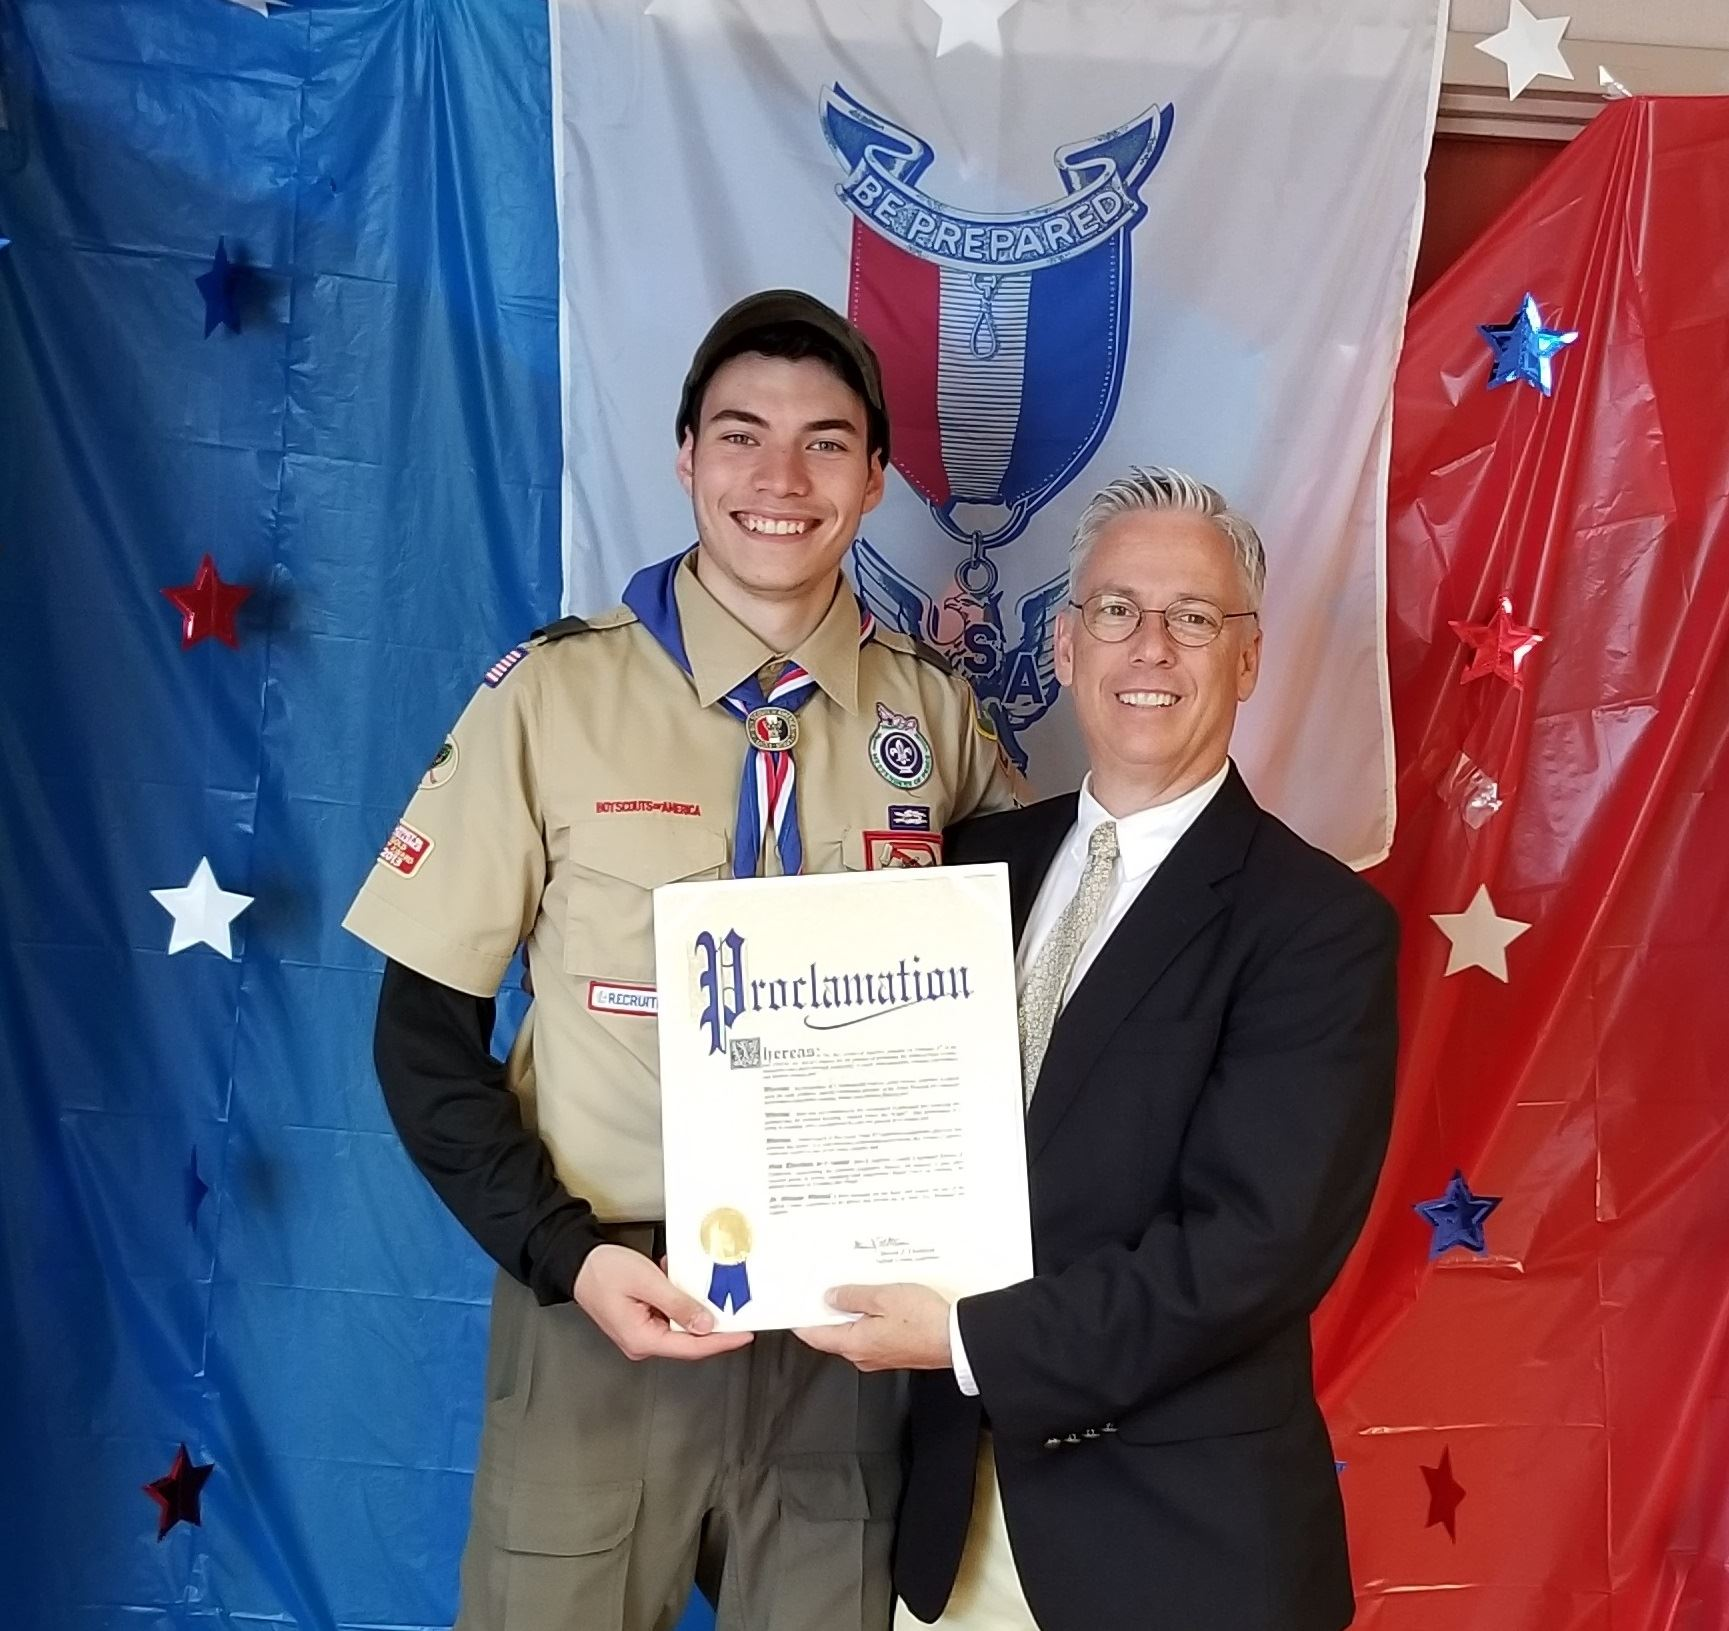 Eagle Scout Leach cropped